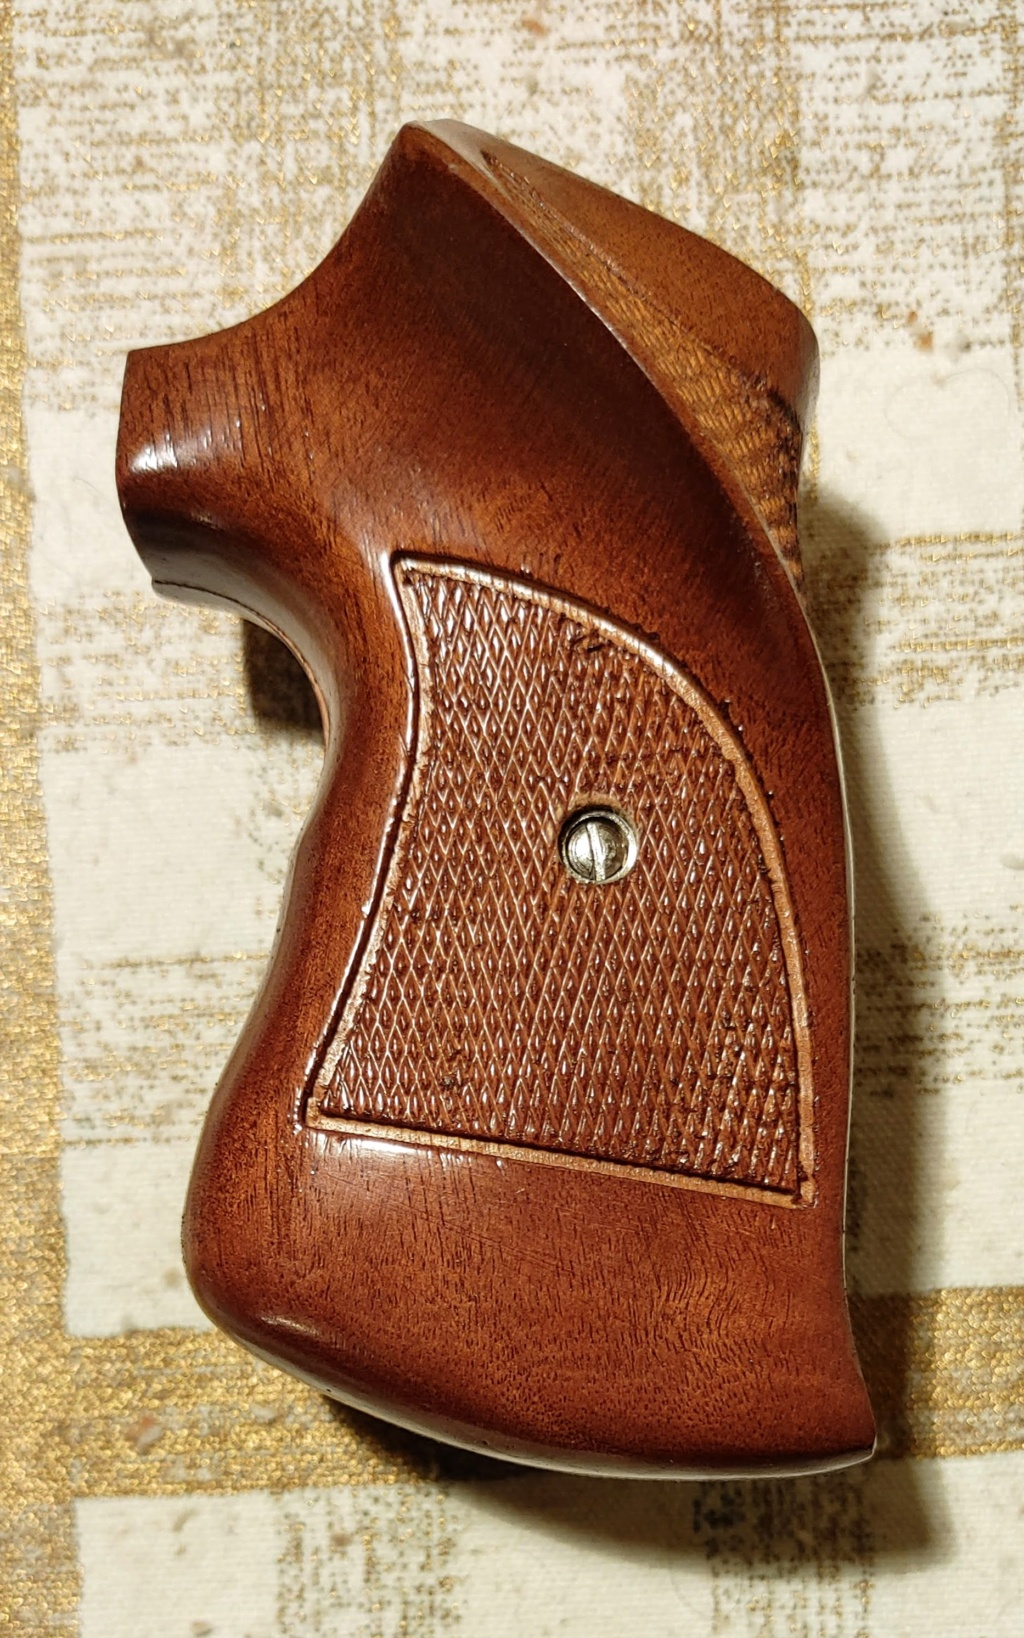 WITHDRAWN:Colt Officers Model .38 Sp Revolver - Second Issue Grips_20